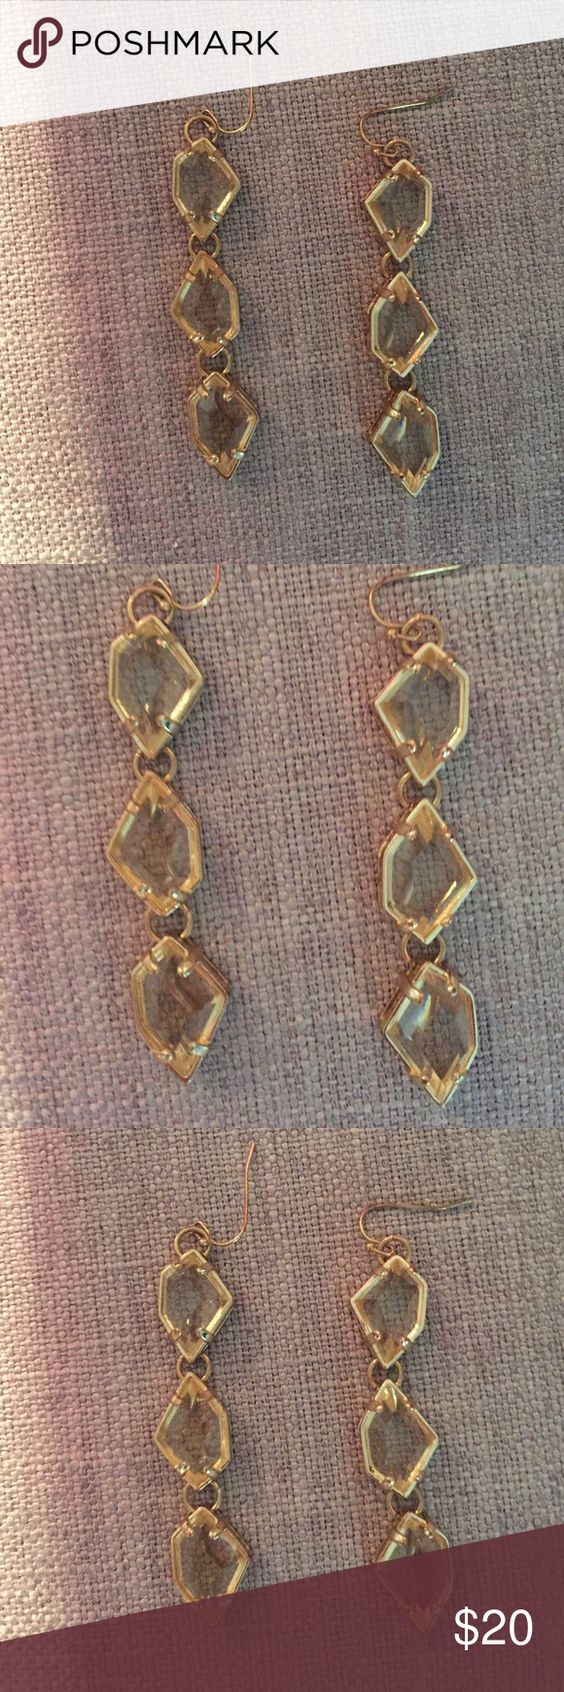 Cache gold /crystal earrings Perfect condition no damage. They are from the store cache they retail for $60 Cache Accessories